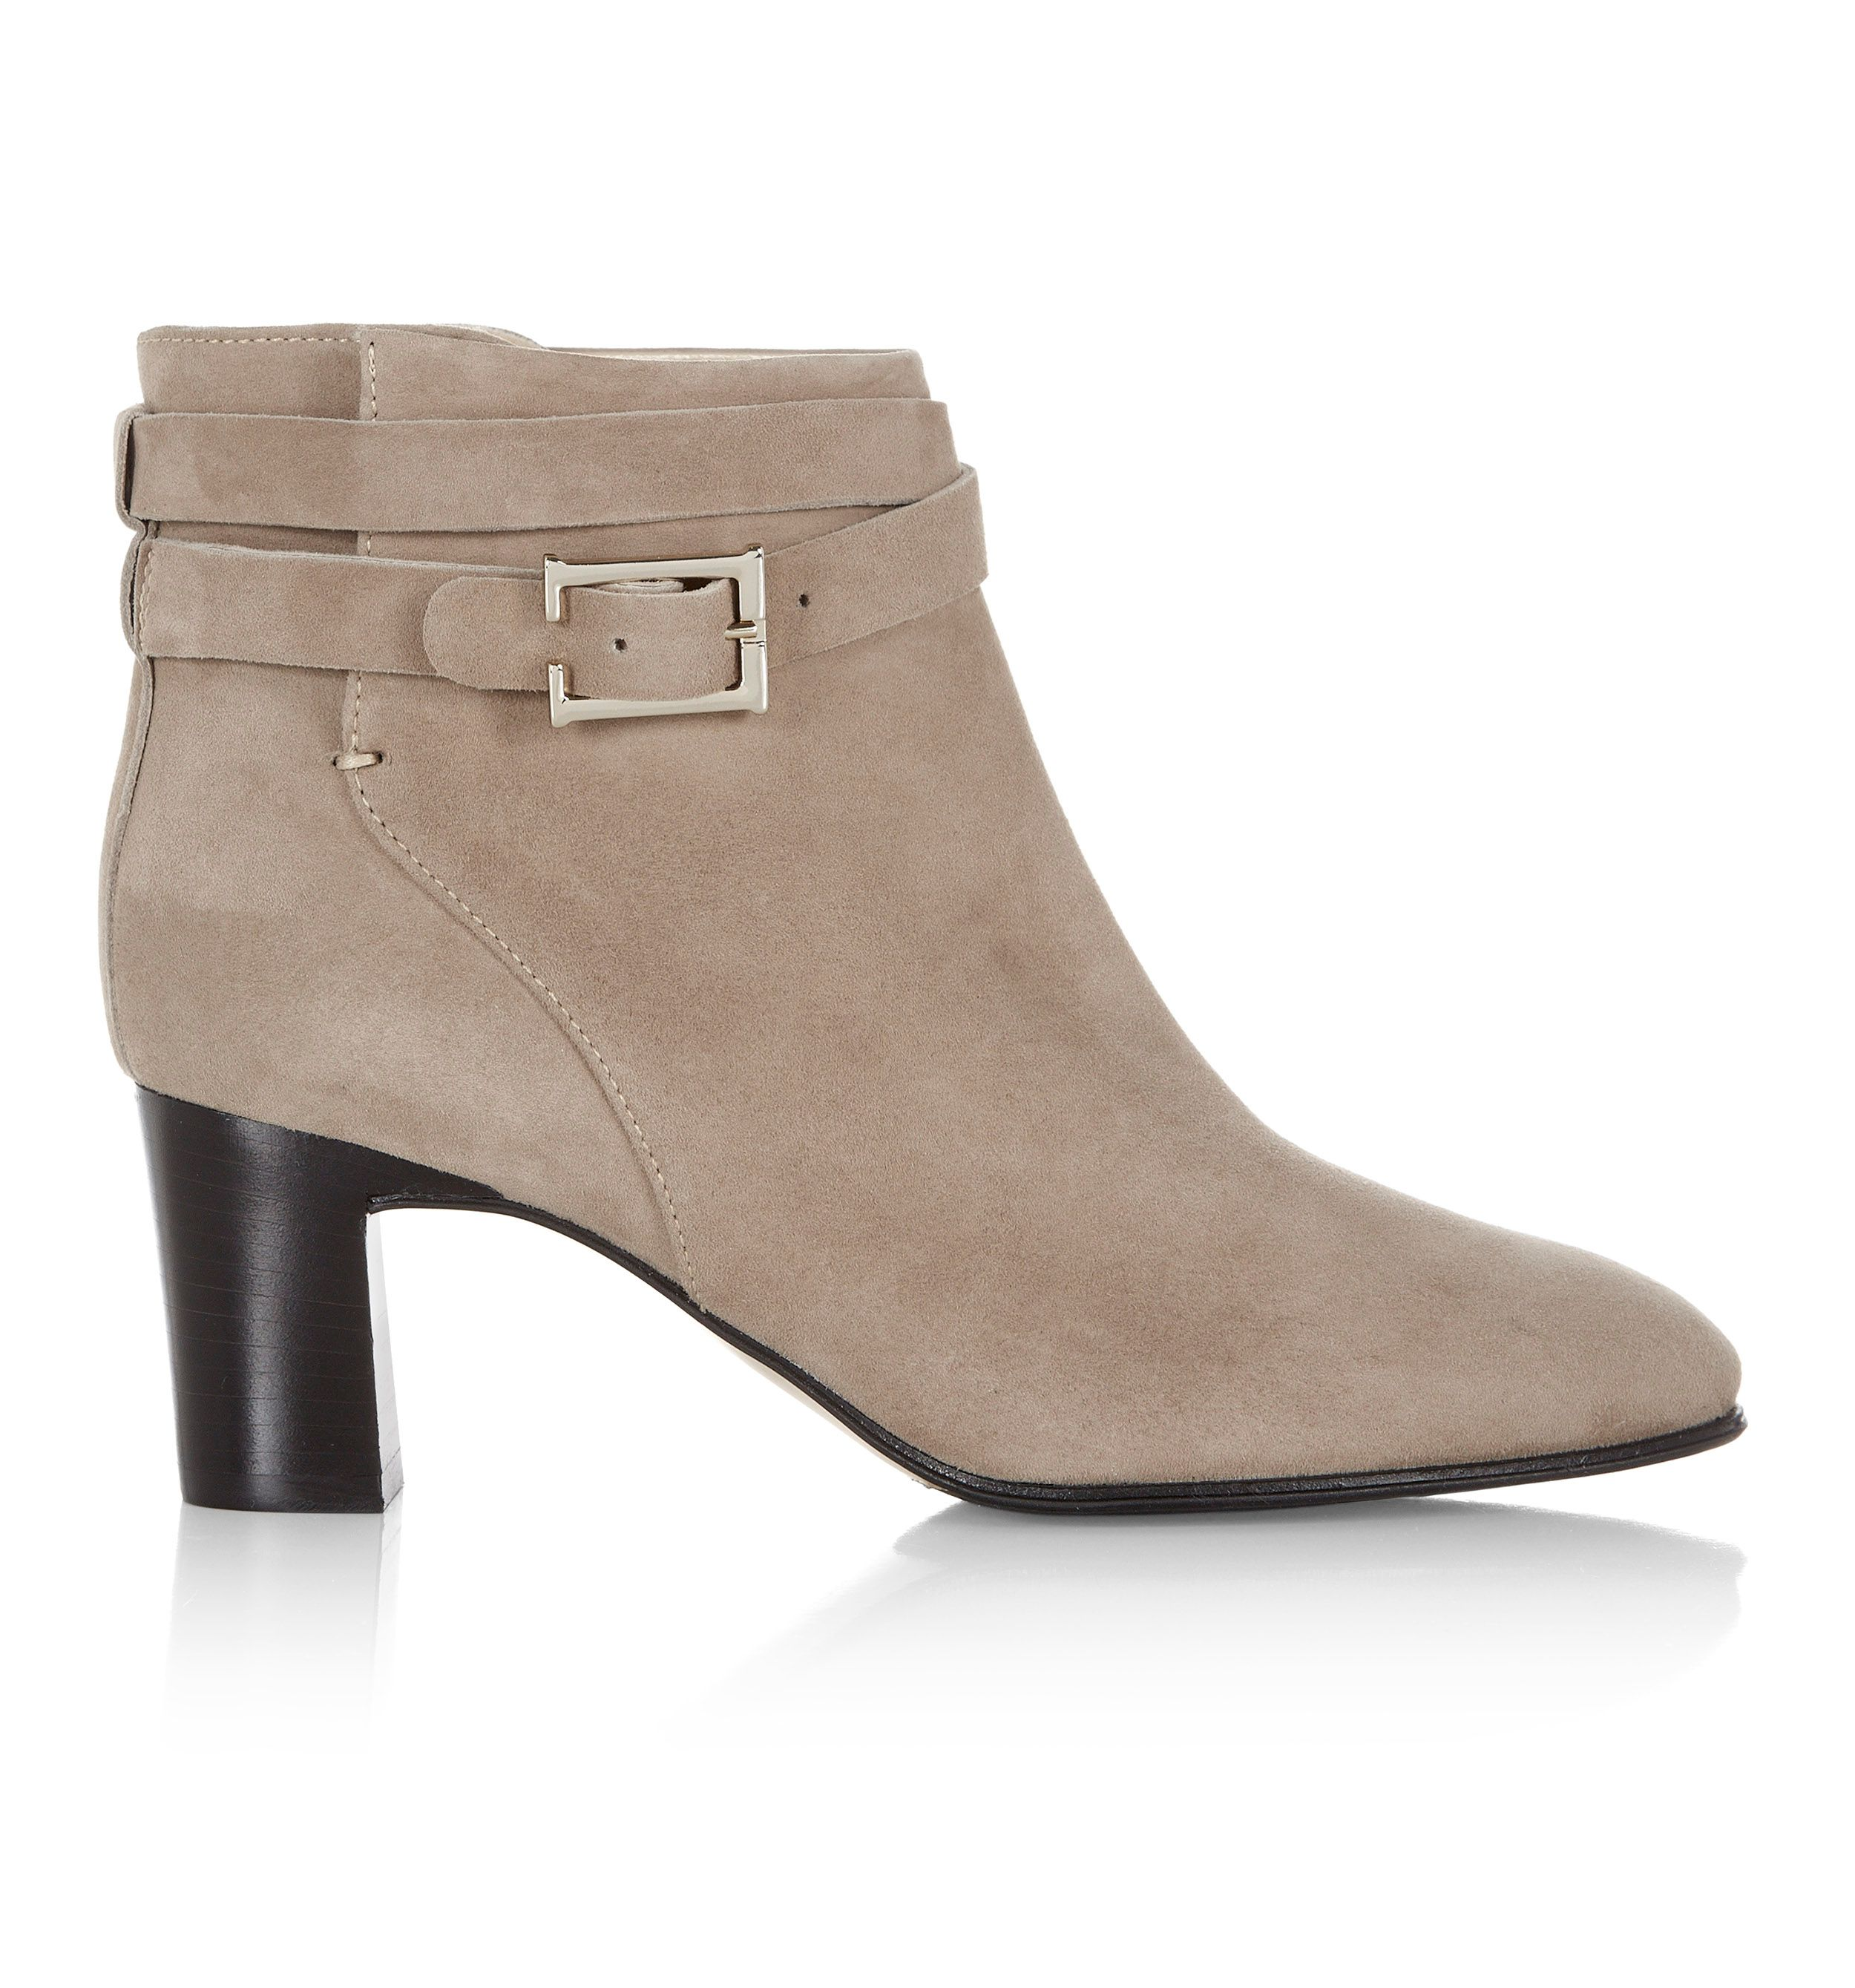 Cleo ankle boot